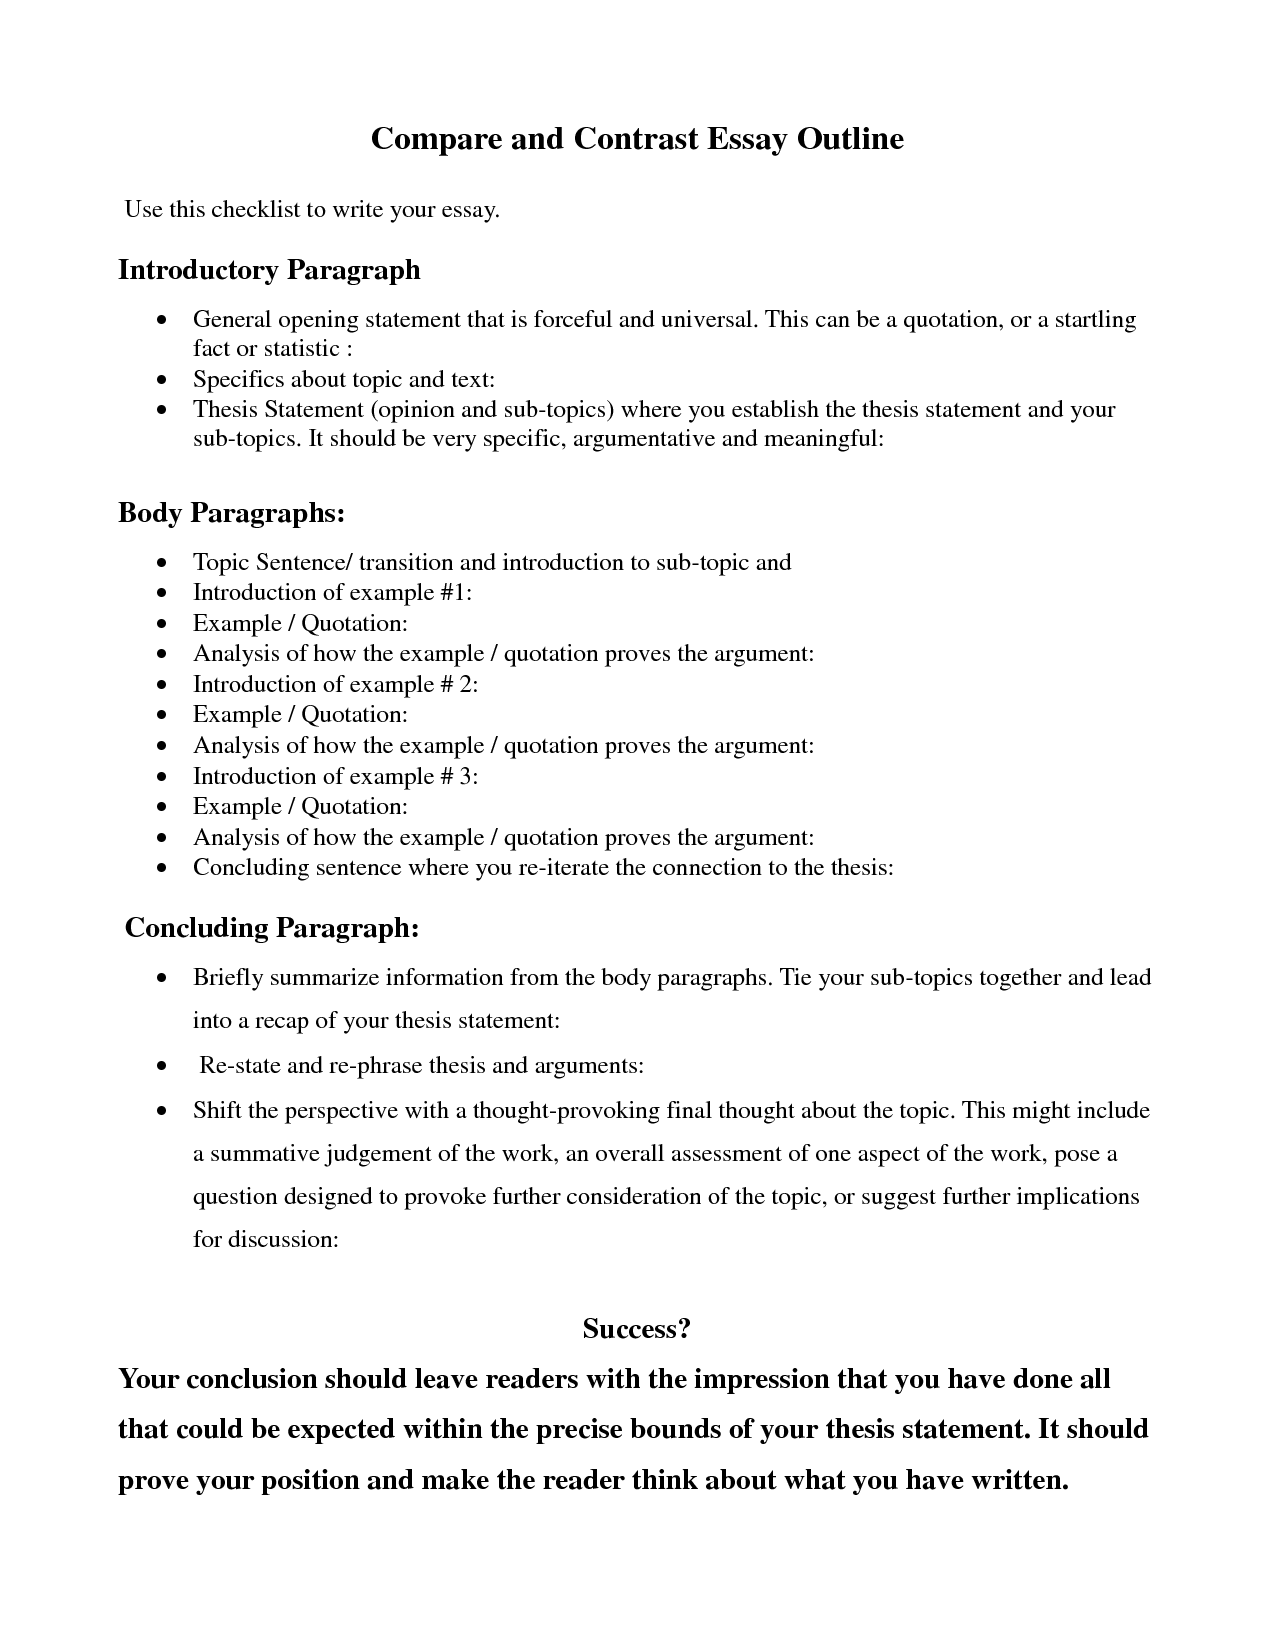 002 Compare And Contrast Essay Template Exceptional 5th Grade Sample Examples Full